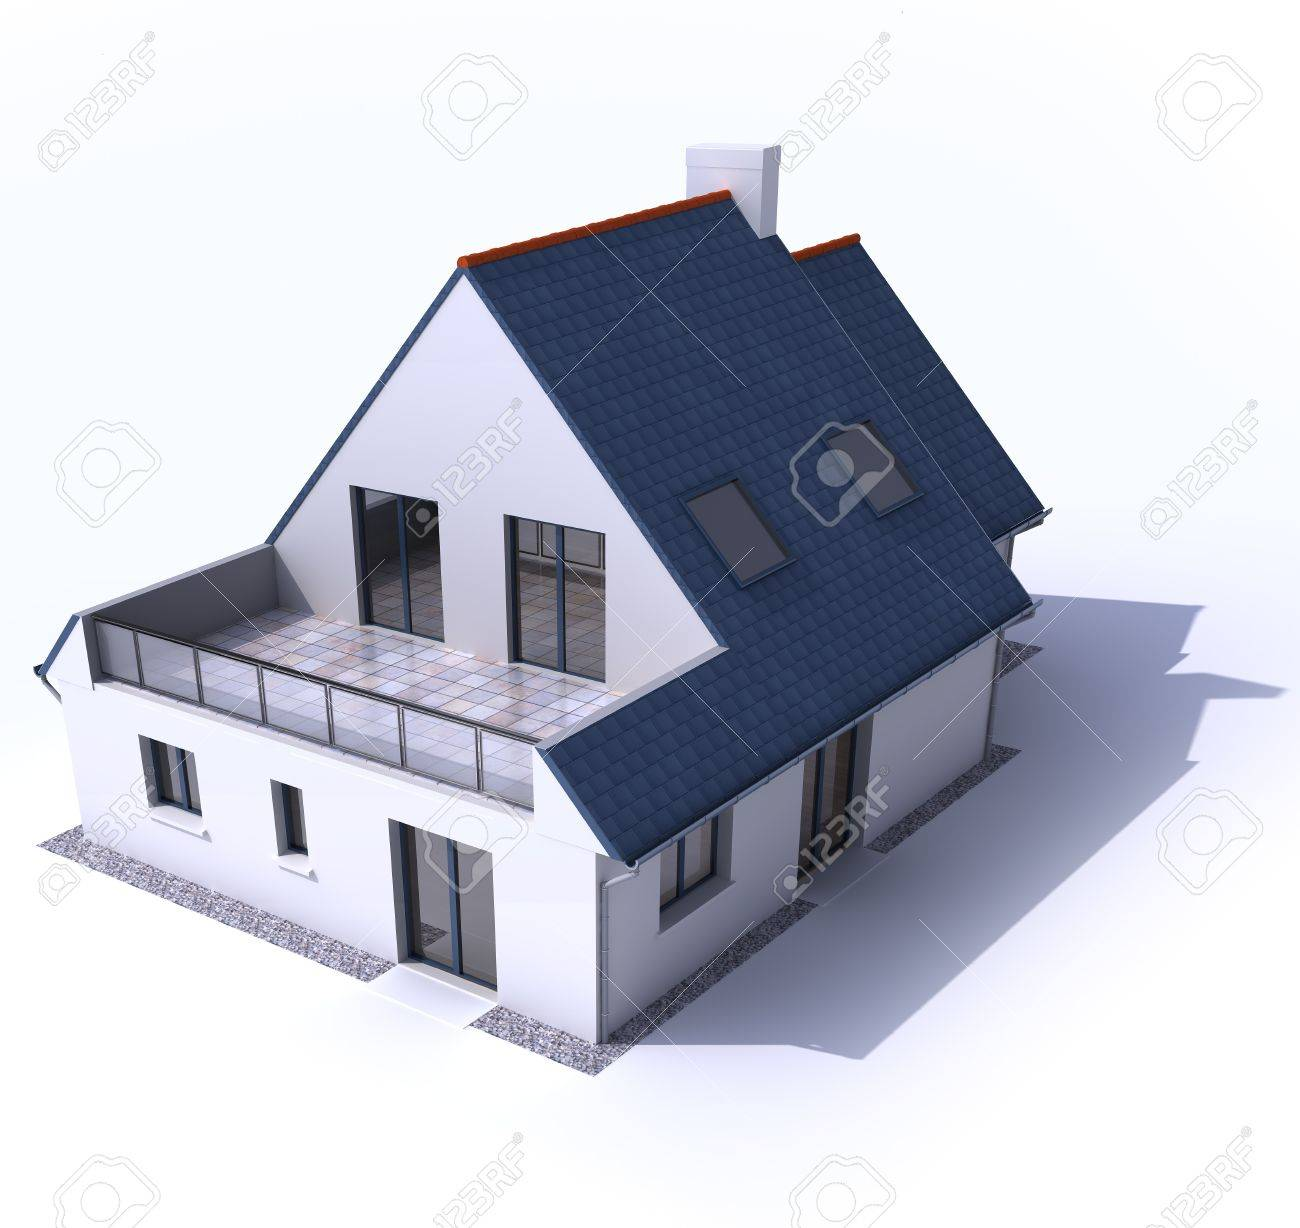 3D Architecture Model Of A House Stock Photo